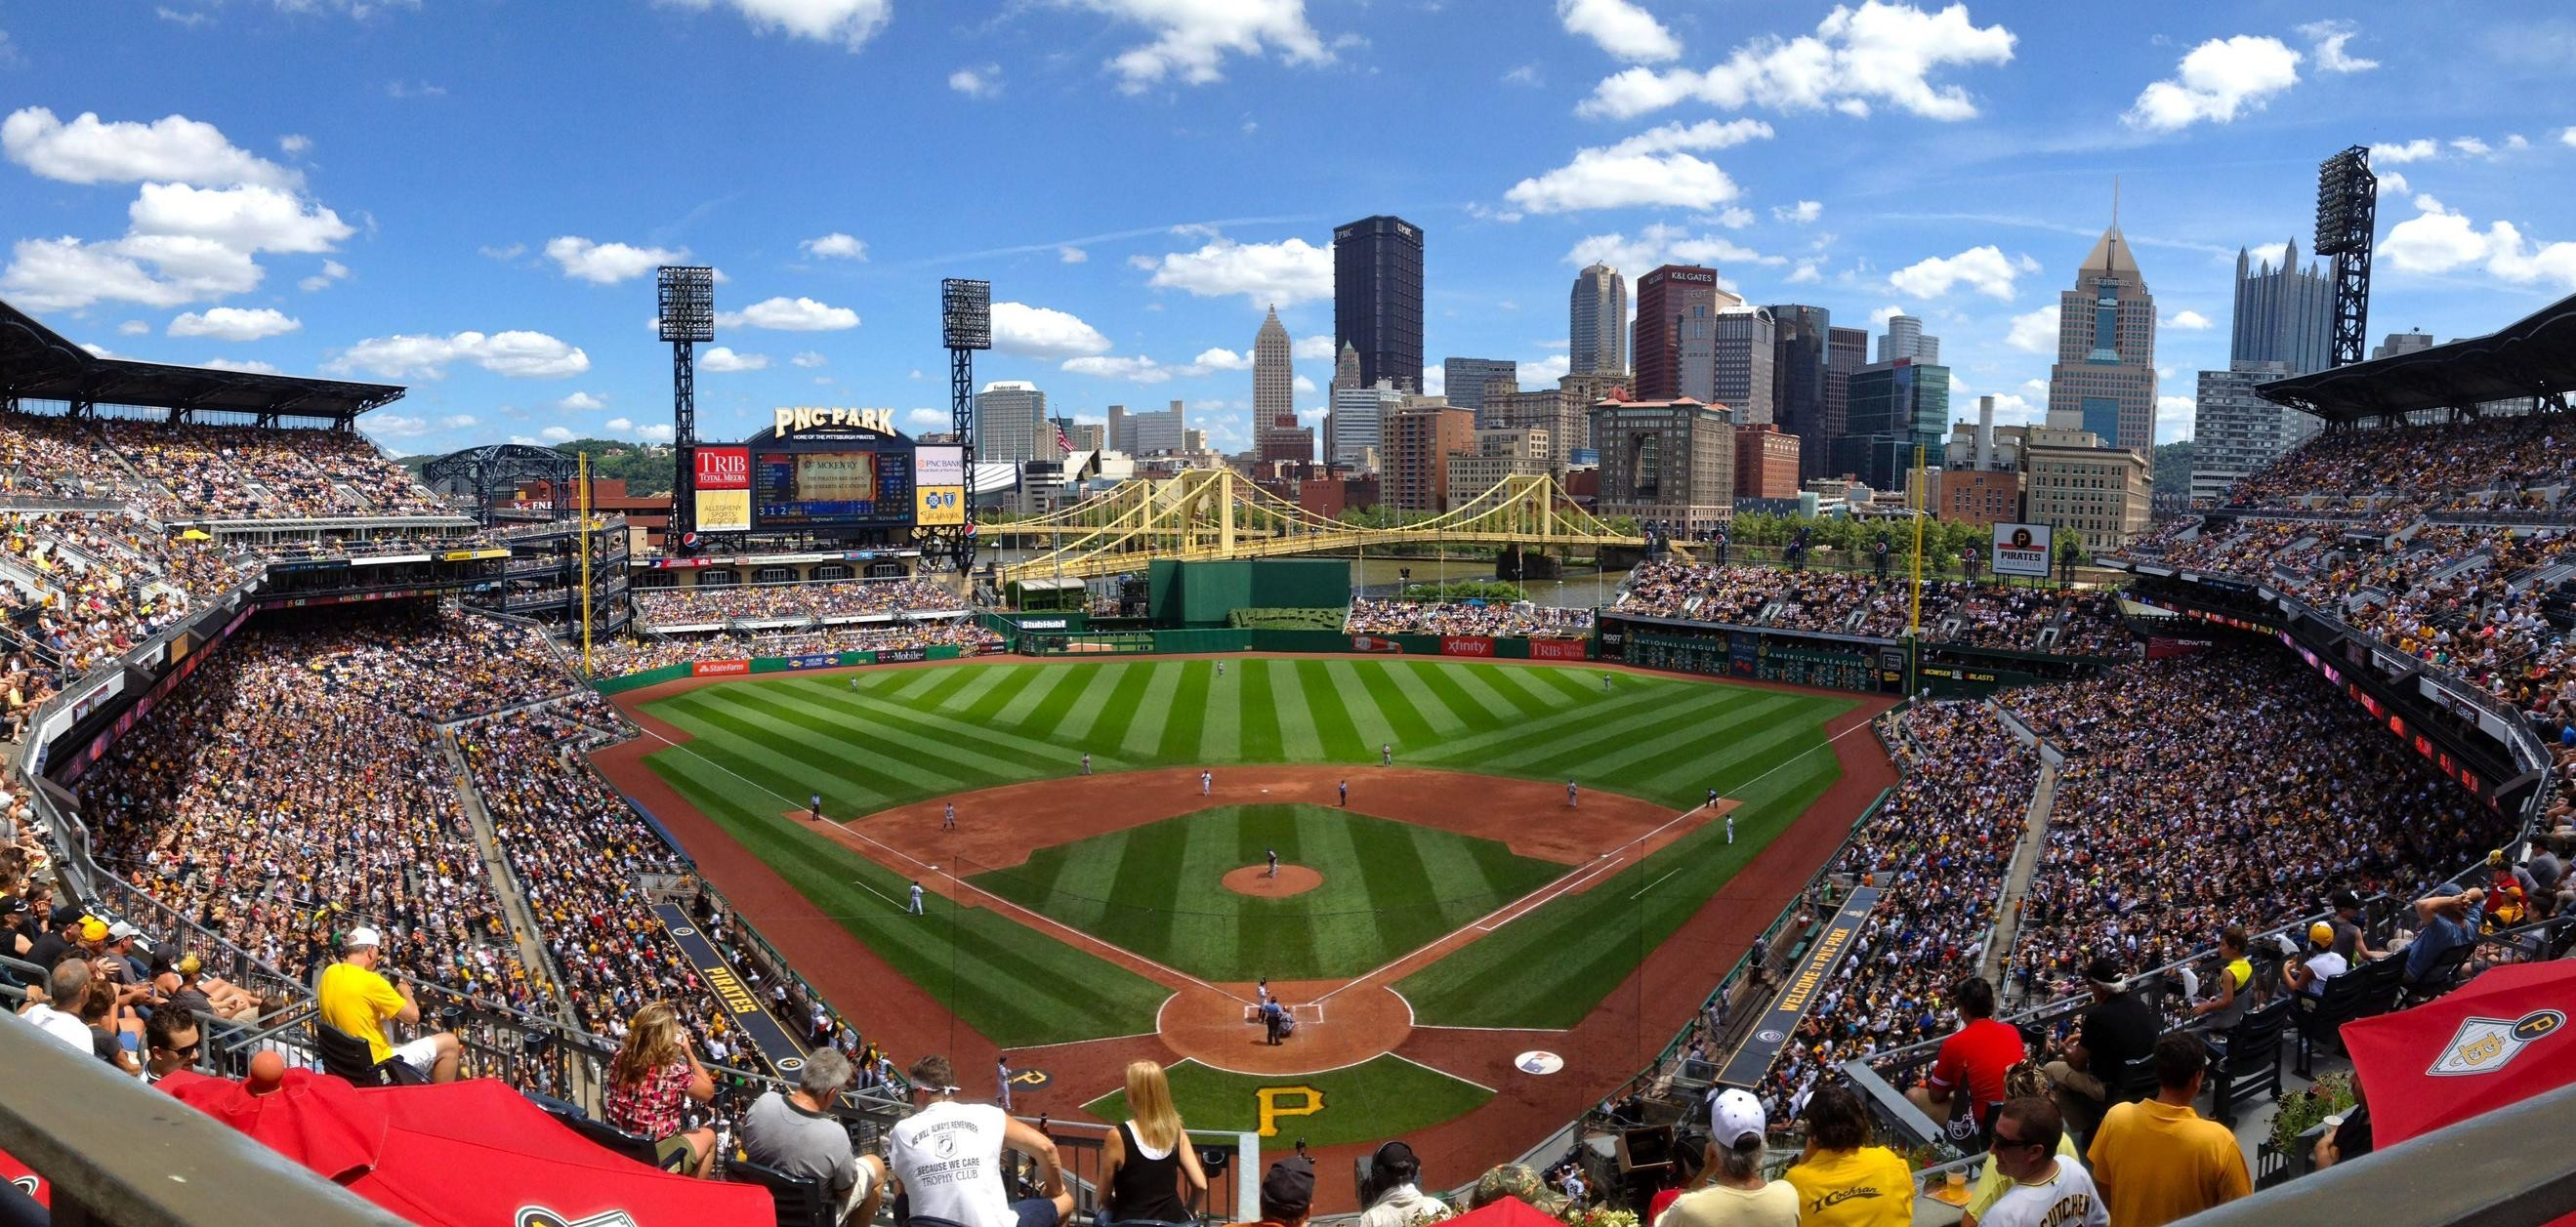 Pittsburgh Pirates v. Washington Nationals – Host Family Event at PNC Park